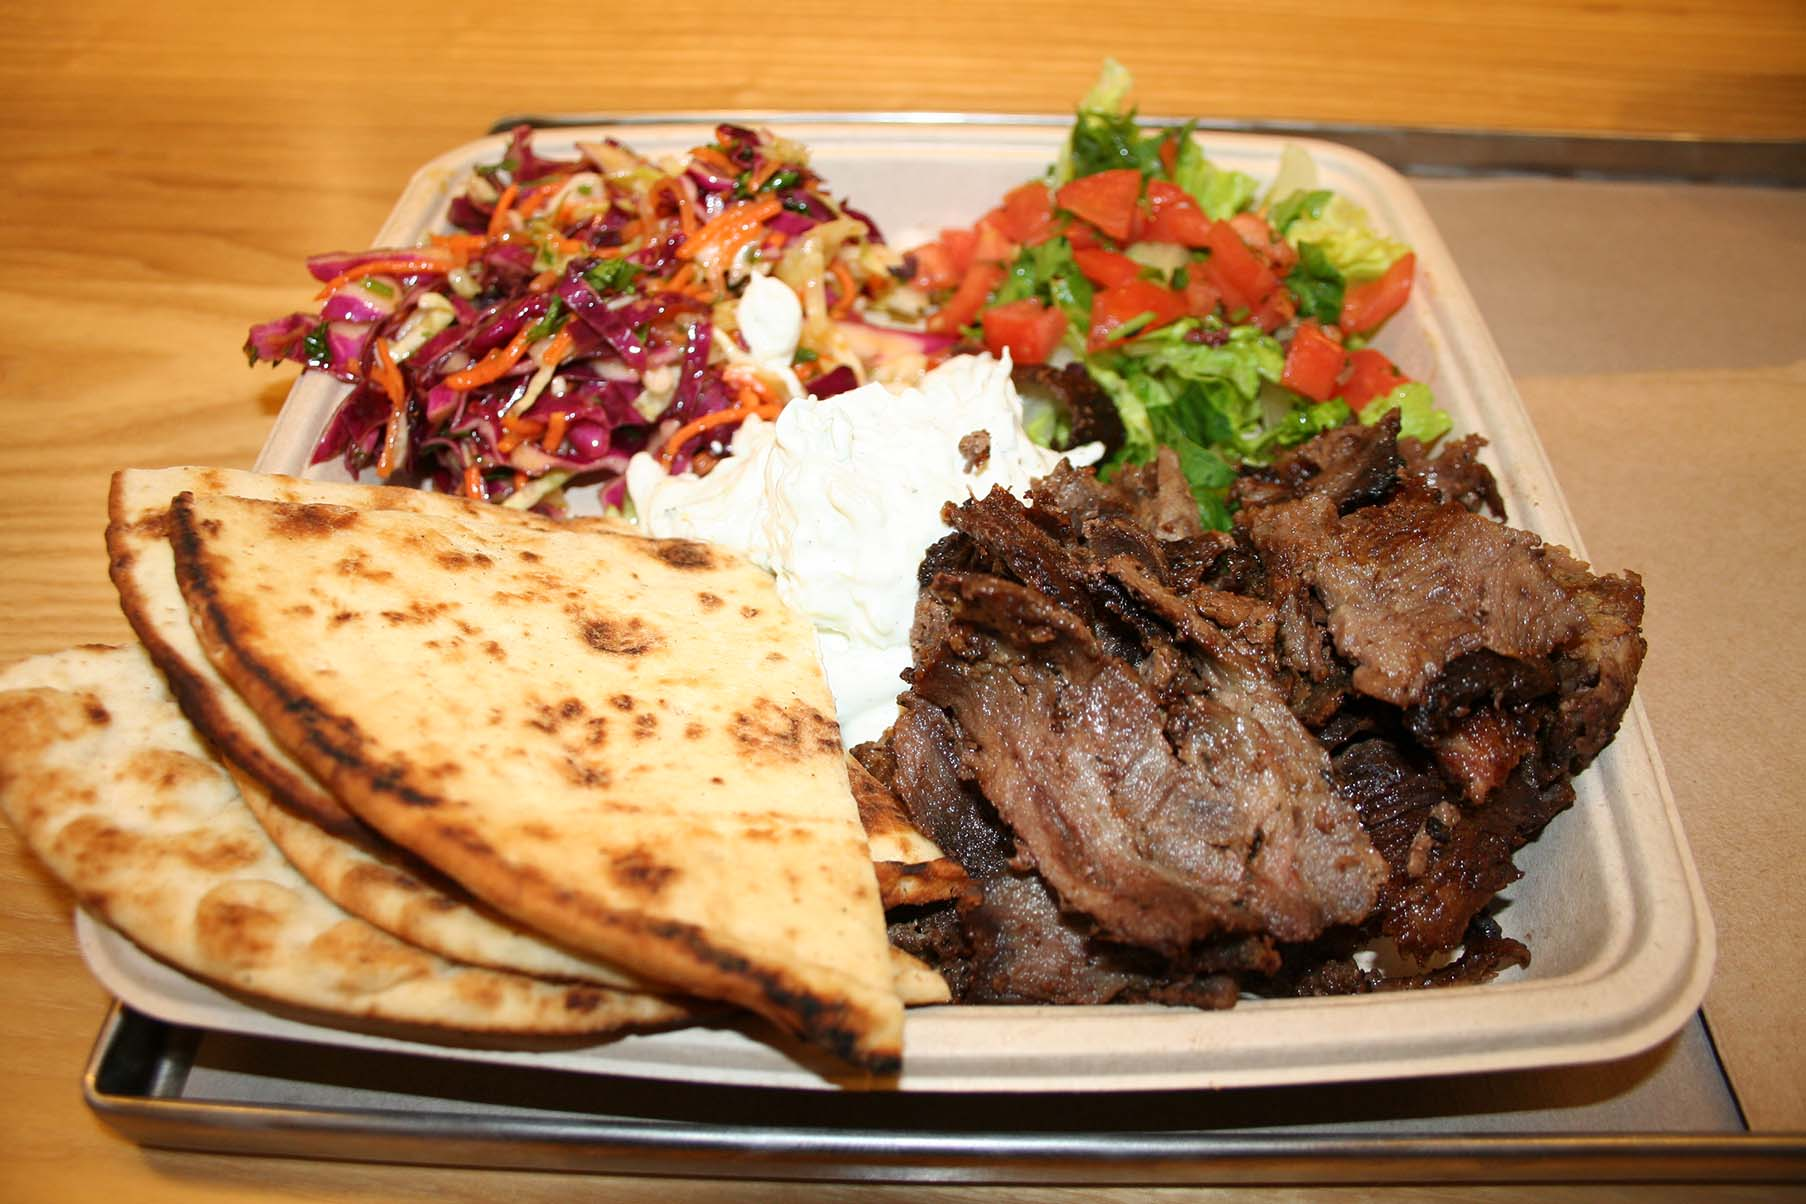 The Yerro plate includes lamb/beef gyro meat, house-baked pita, Aegean salad (top left), lettuce and tomato and traditional tzatziki sauce. (Photo: Mark Heckathorn/DC on Heels)